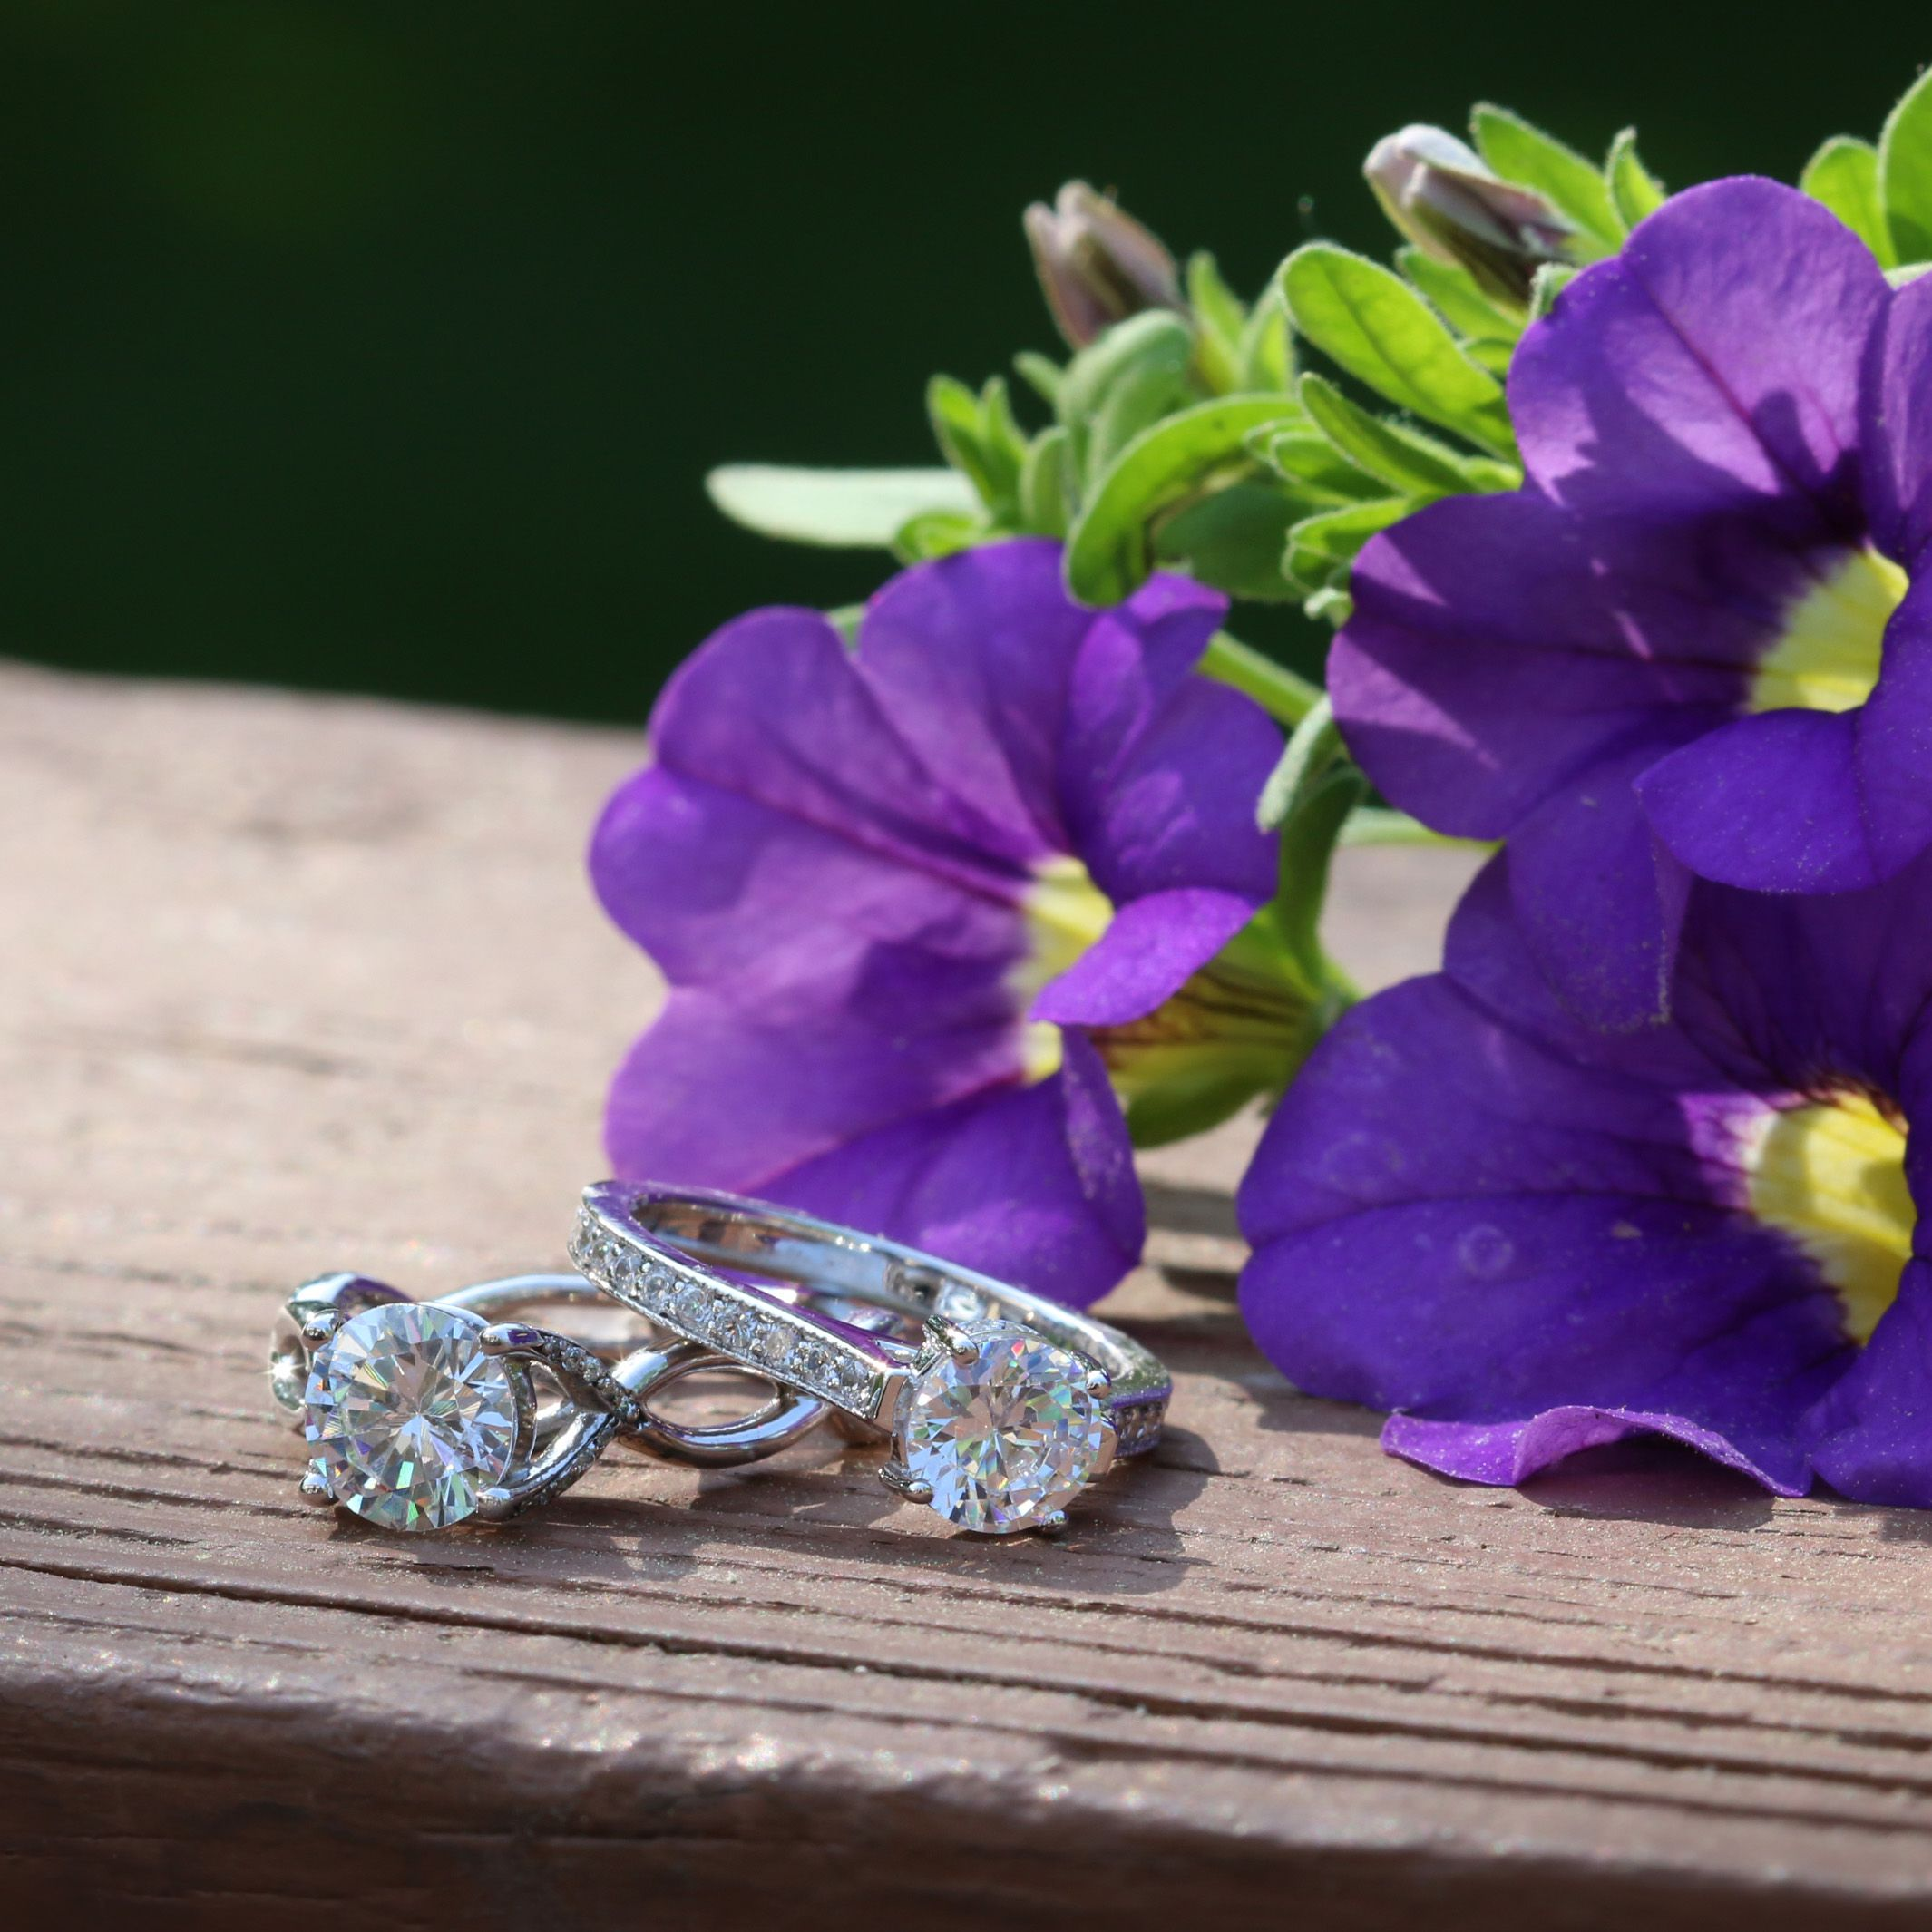 Diamond accented engagement rings  #diamonds #engagement #wedding #rings #bands #nature #trendy #bestseller